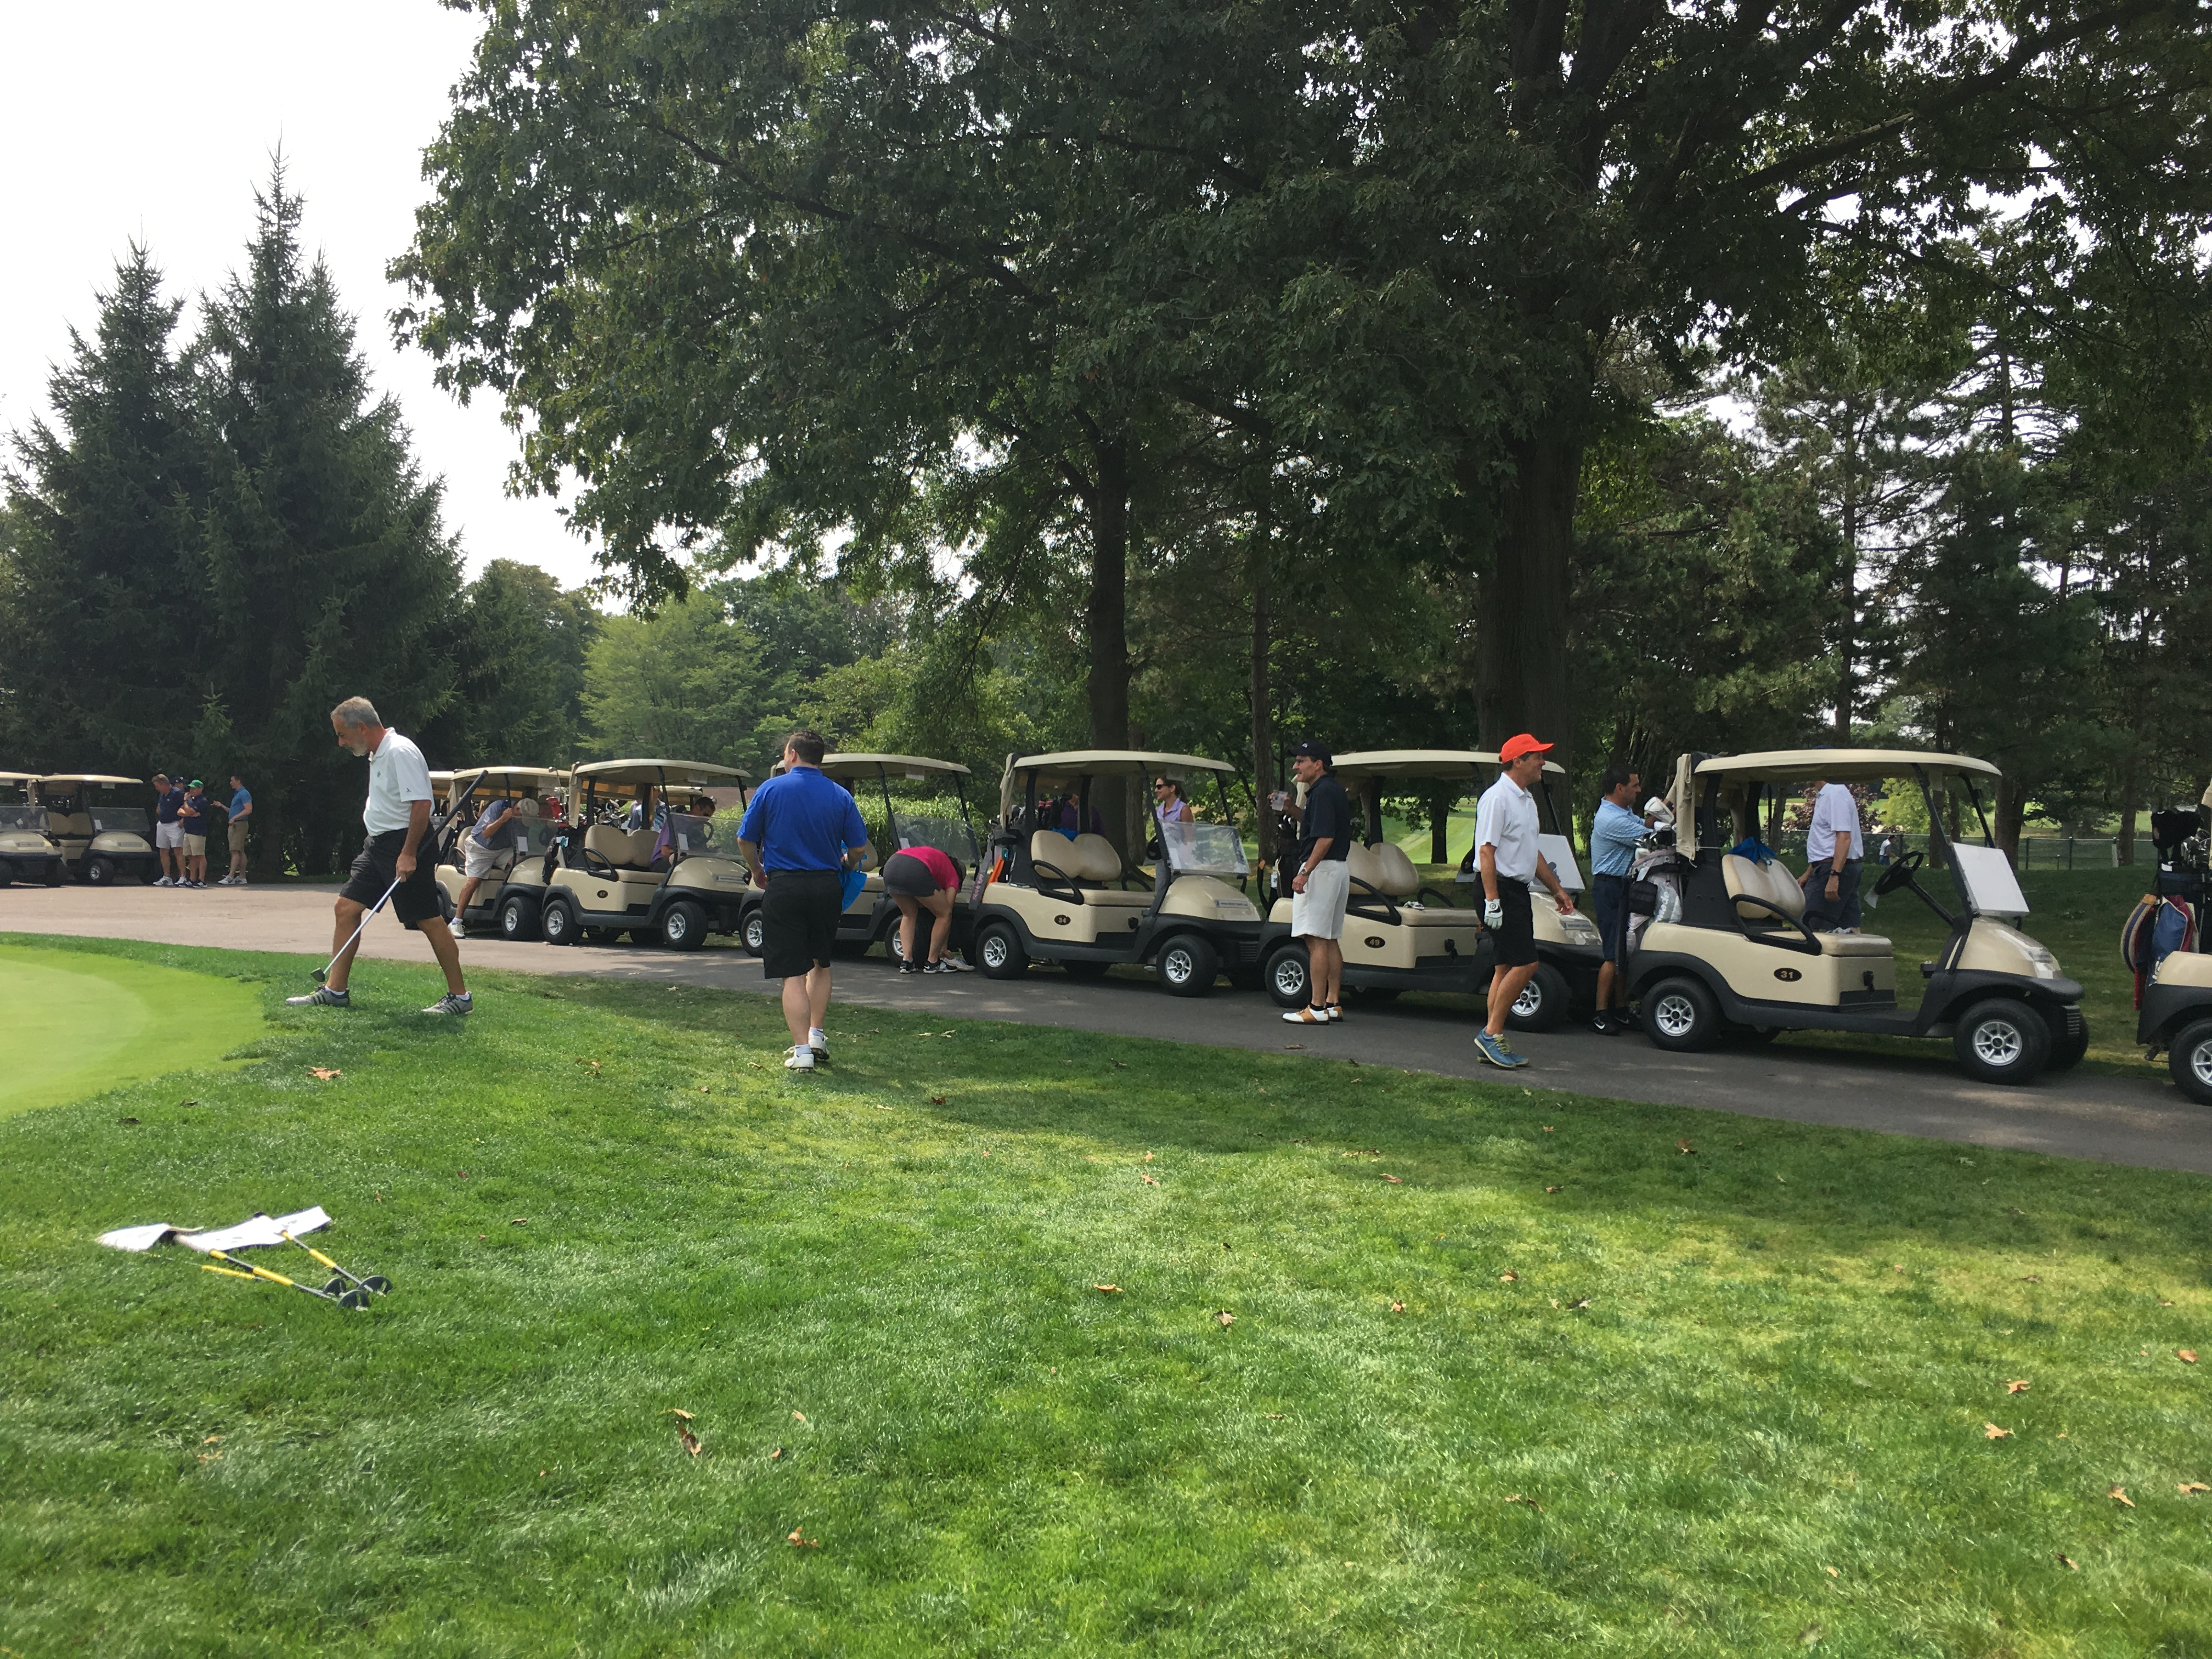 2018 Golf Outing pic 6.JPG